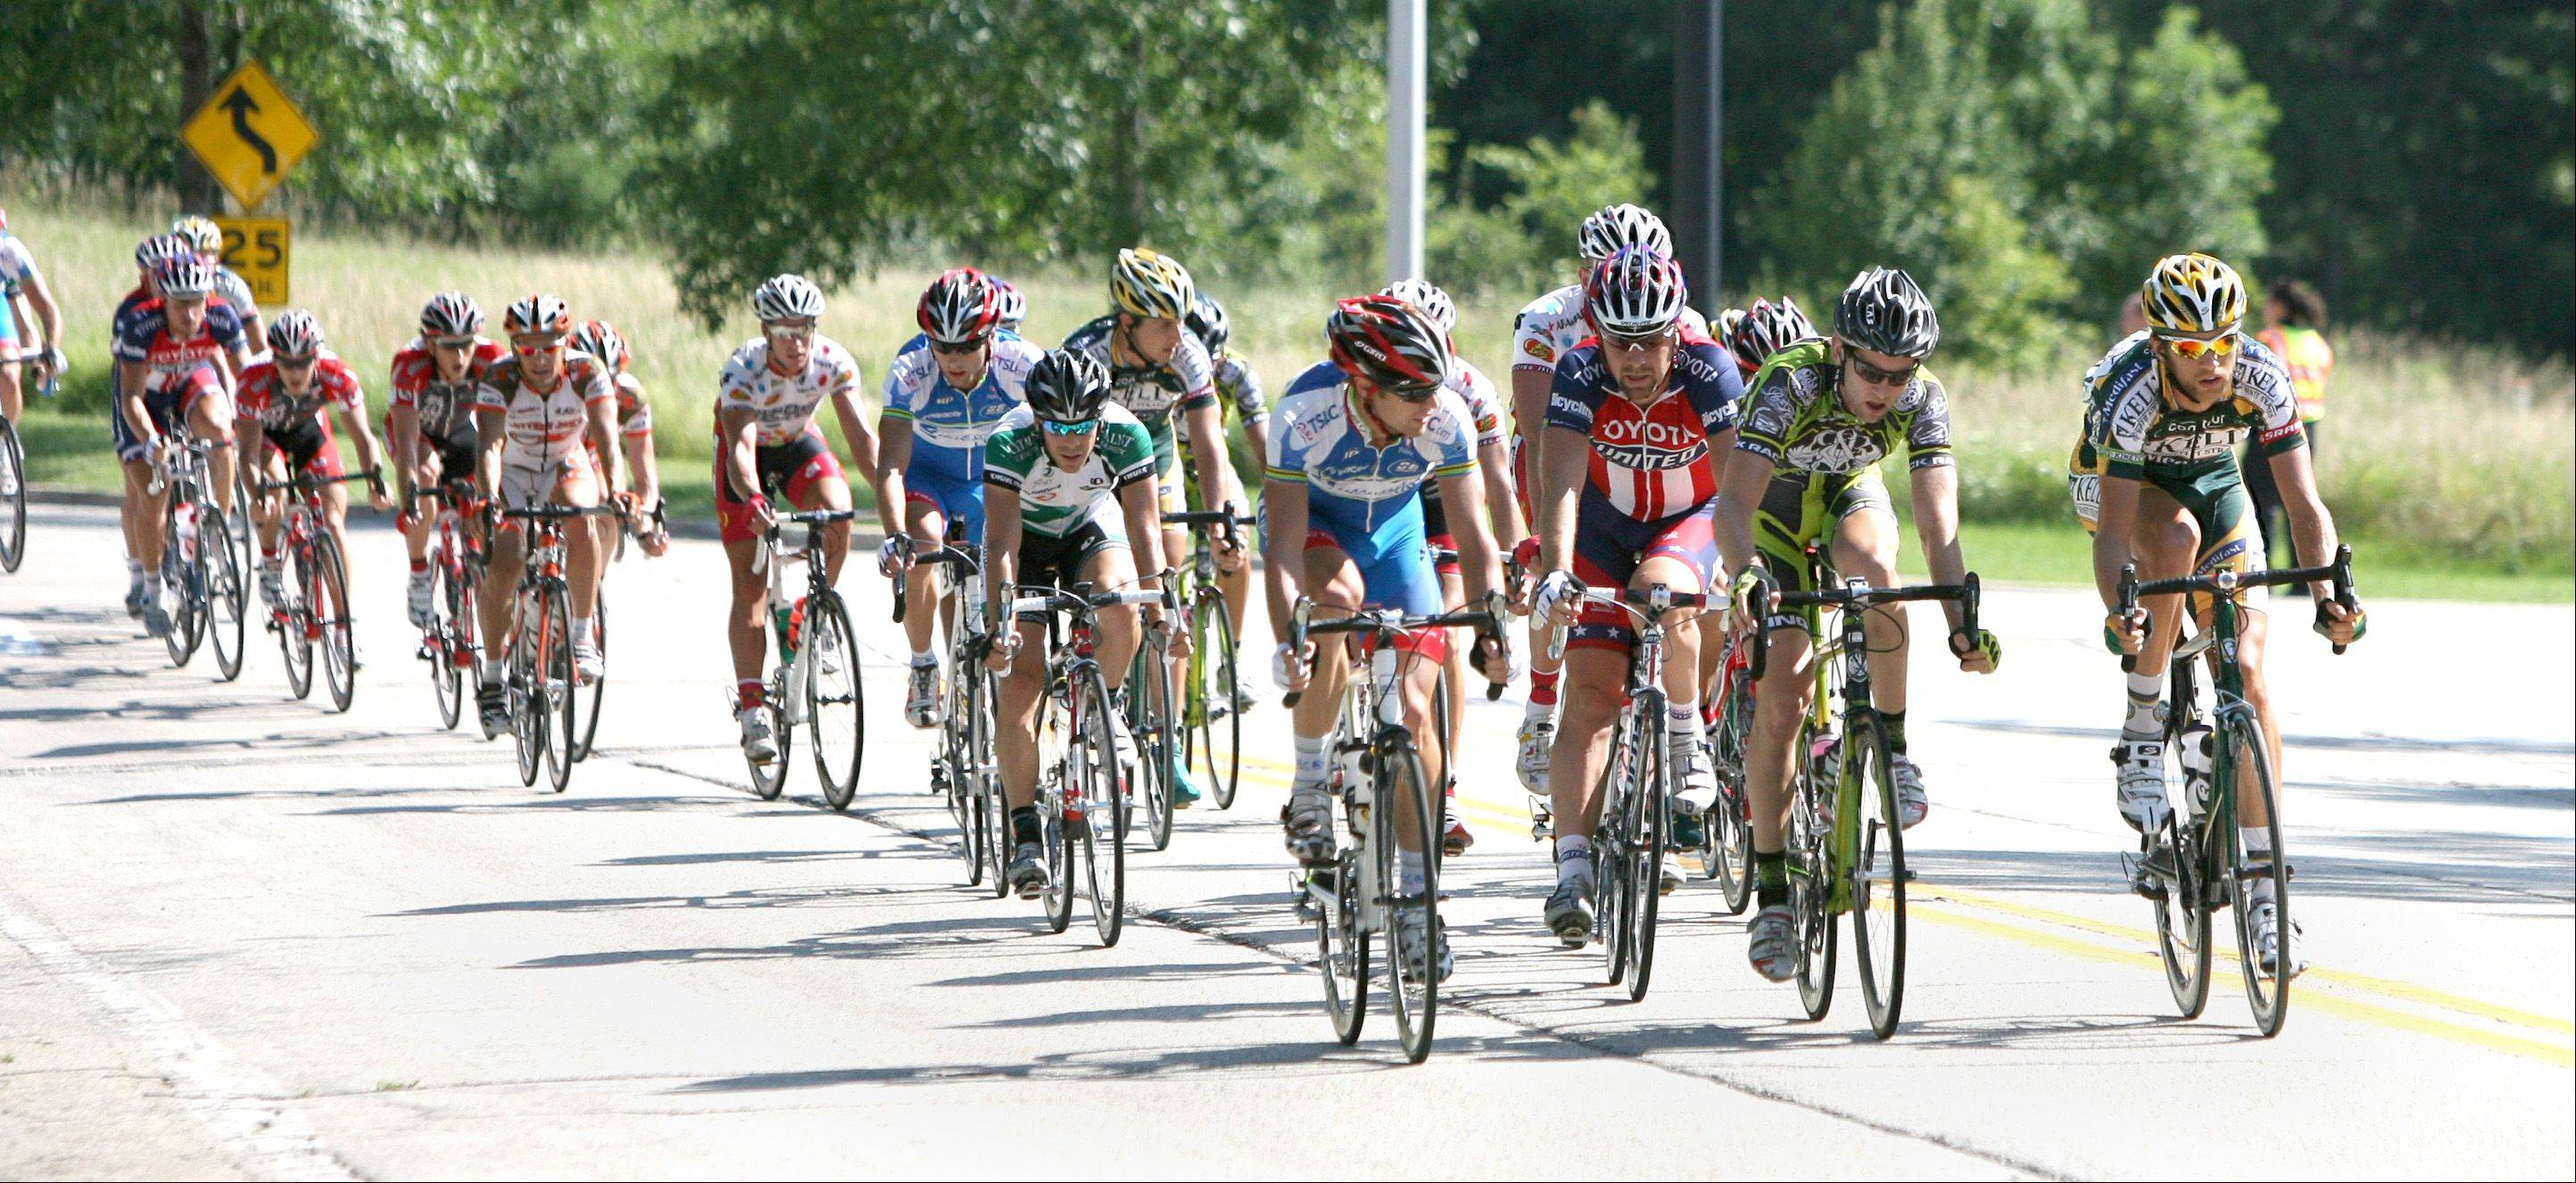 Much of the Tour of Elk Grove is on local streets, but some major roadways are temporarily affected.